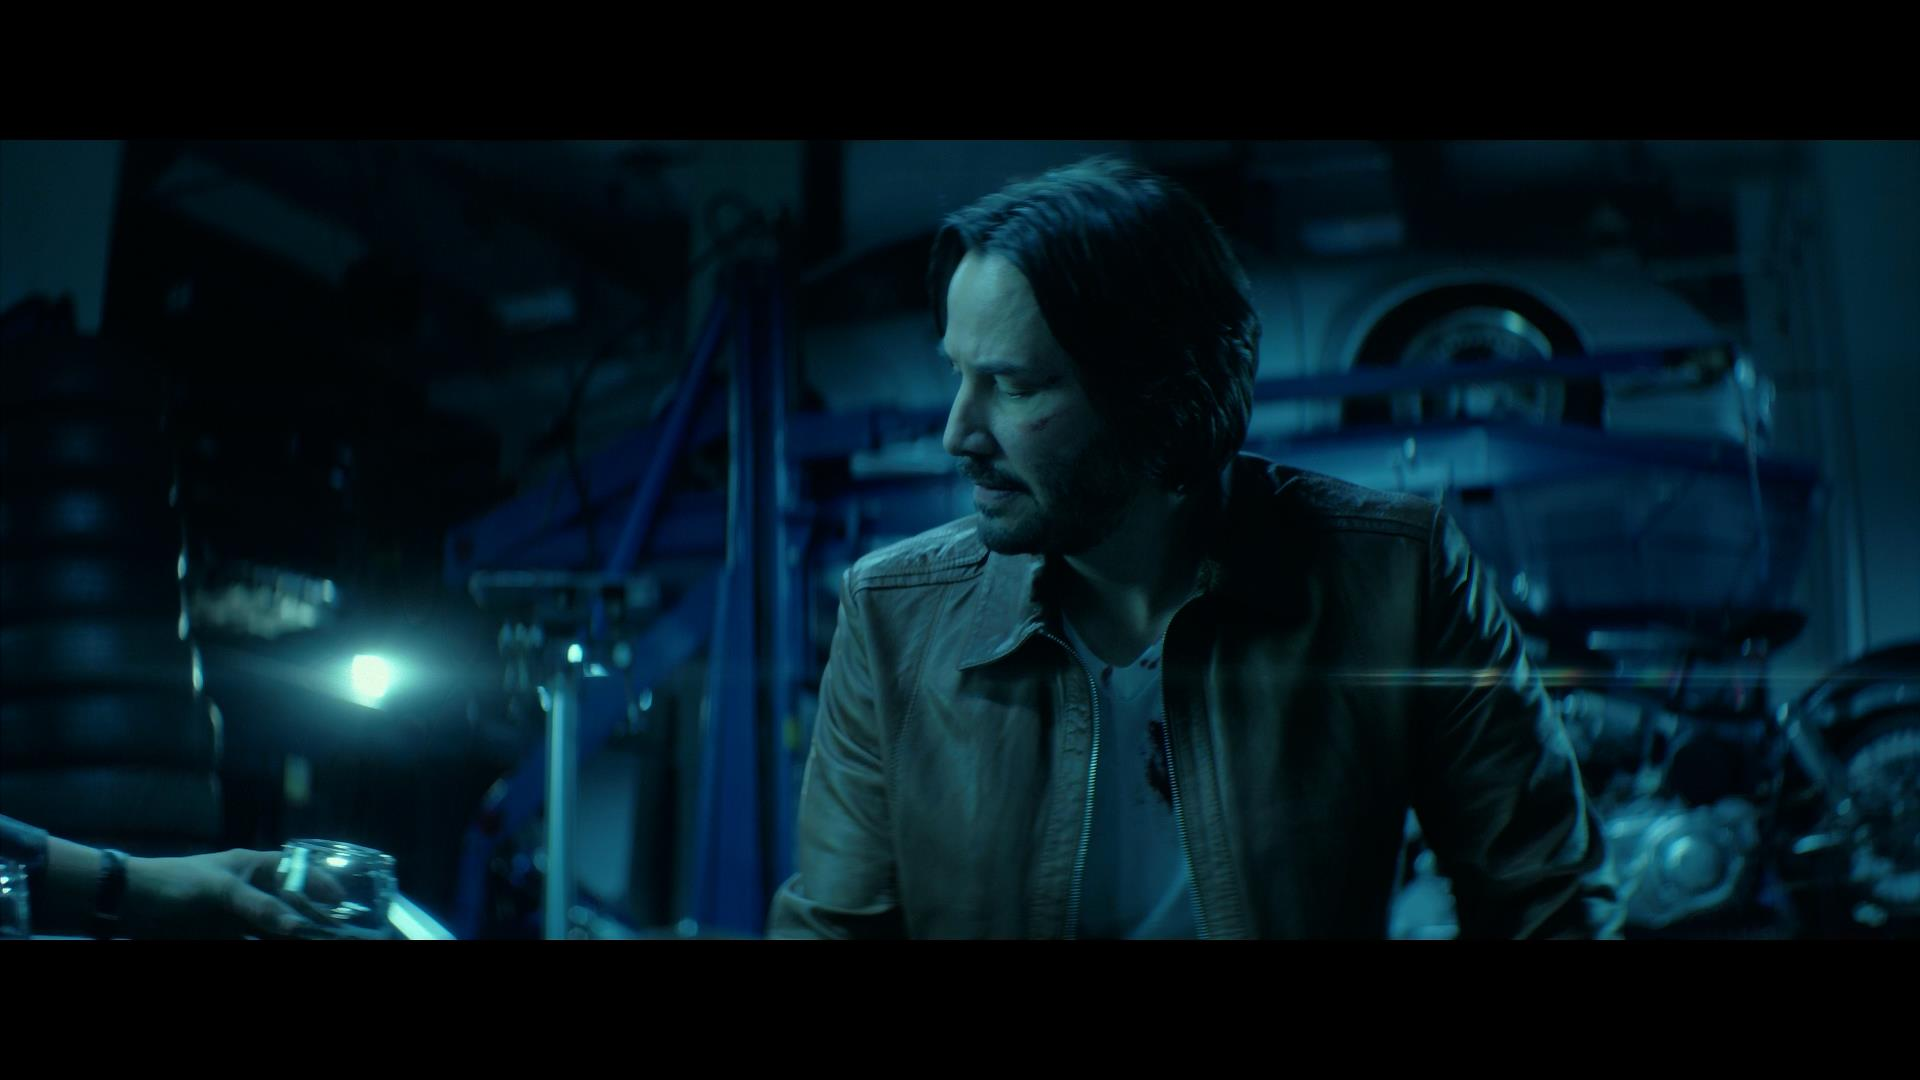 https://i1.wp.com/cdn.highdefdigest.com/uploads/2015/01/24/johnwick1.jpg